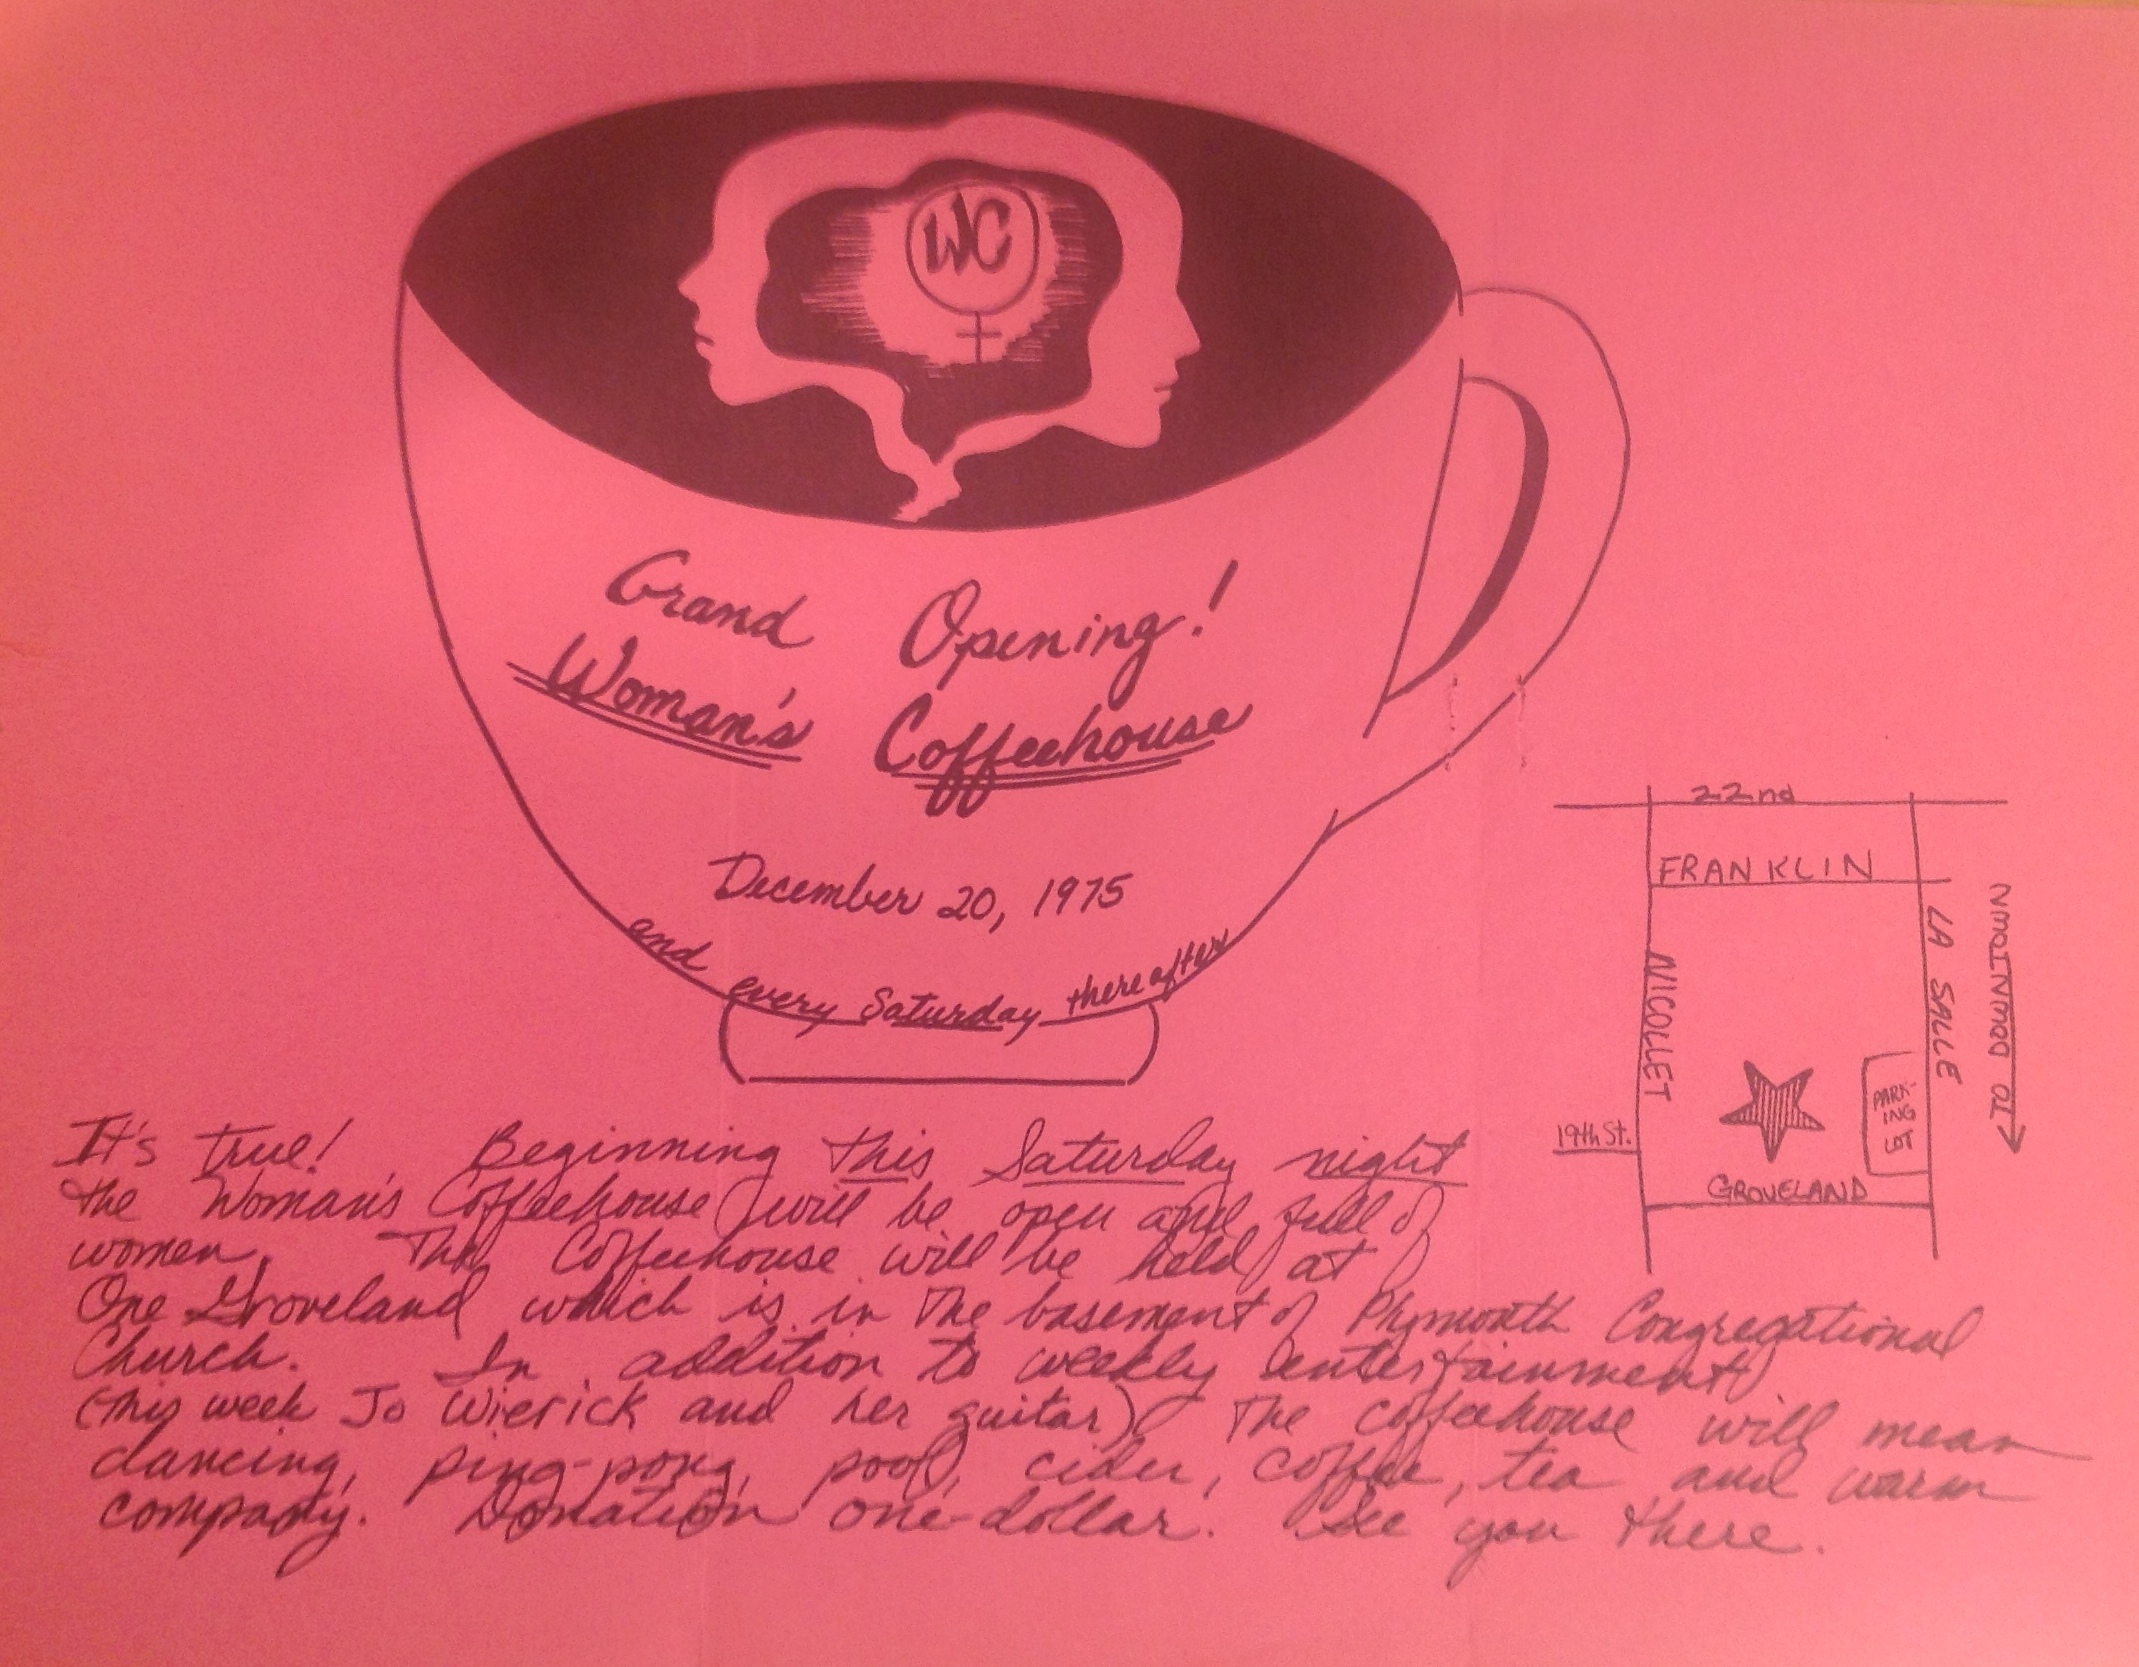 coffeehouse collective map, mhs, cropped, 1975